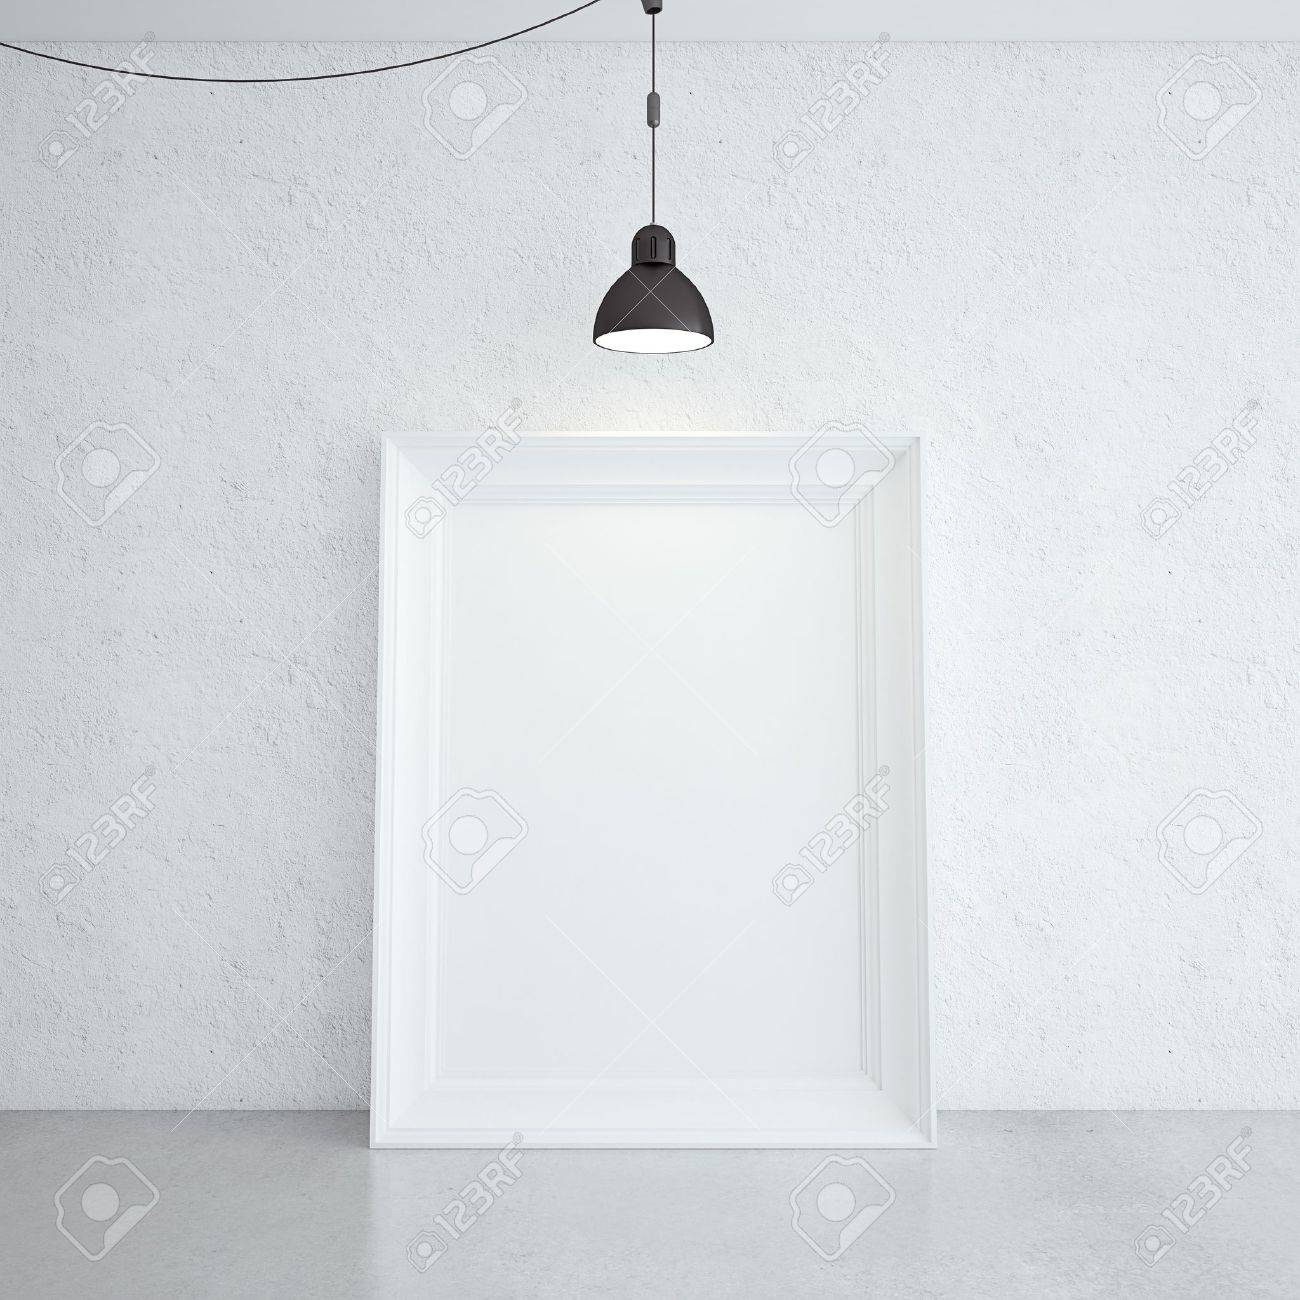 white frame in room and lamp - 18505537